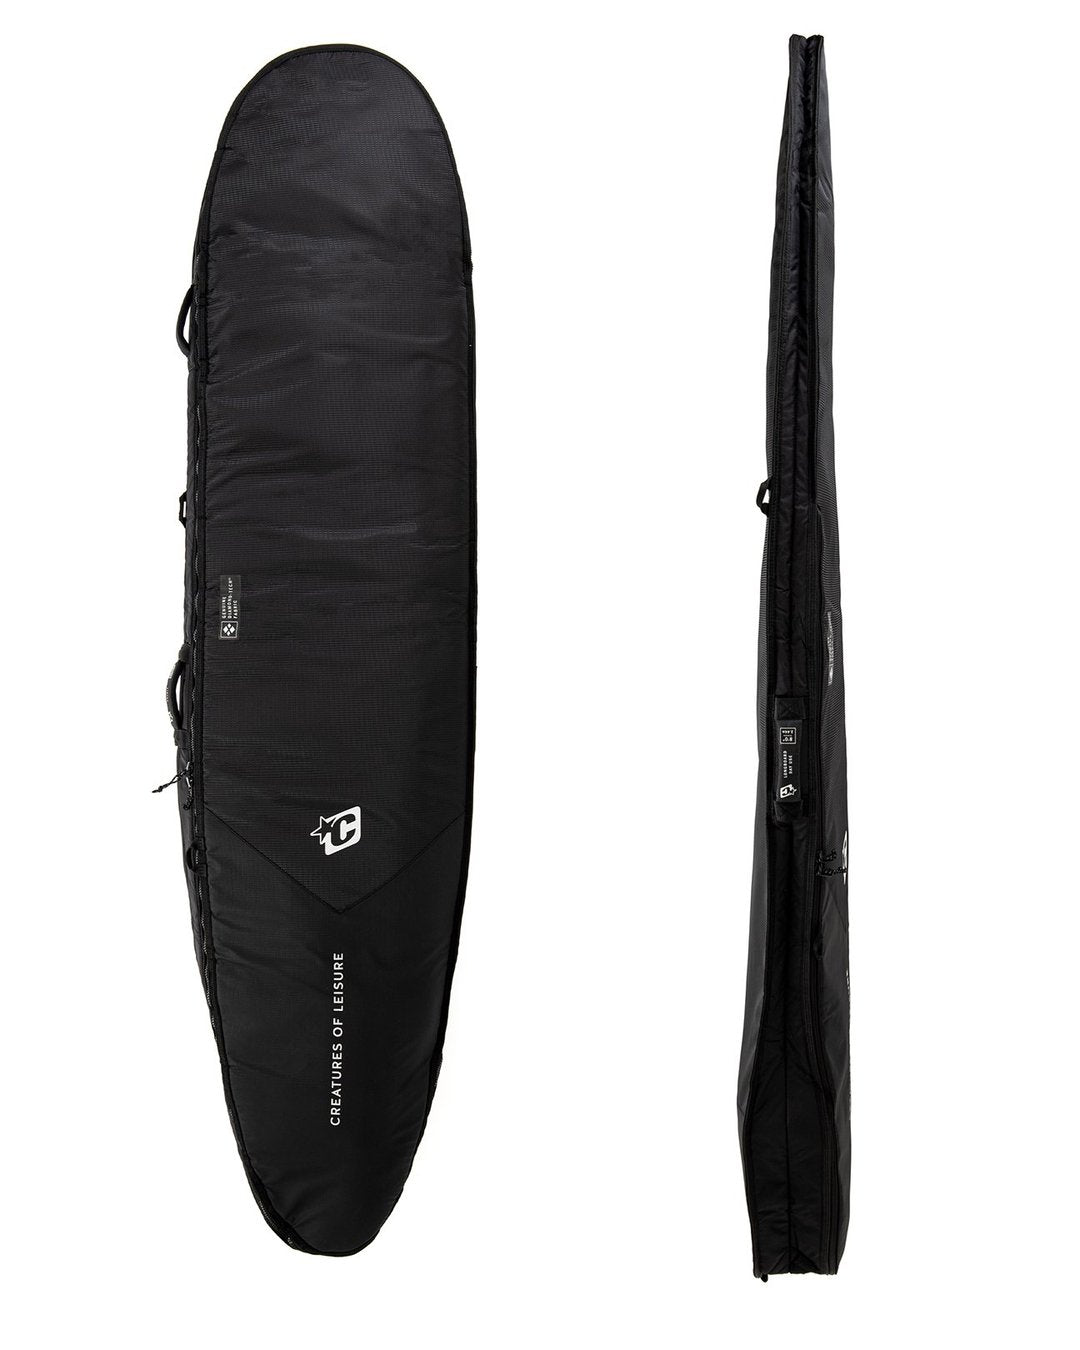 "Creatures LONGBOARD DAY USE DT2.0 8'0"" : BLACK SILVER - Board Store CreaturesBoardcover"